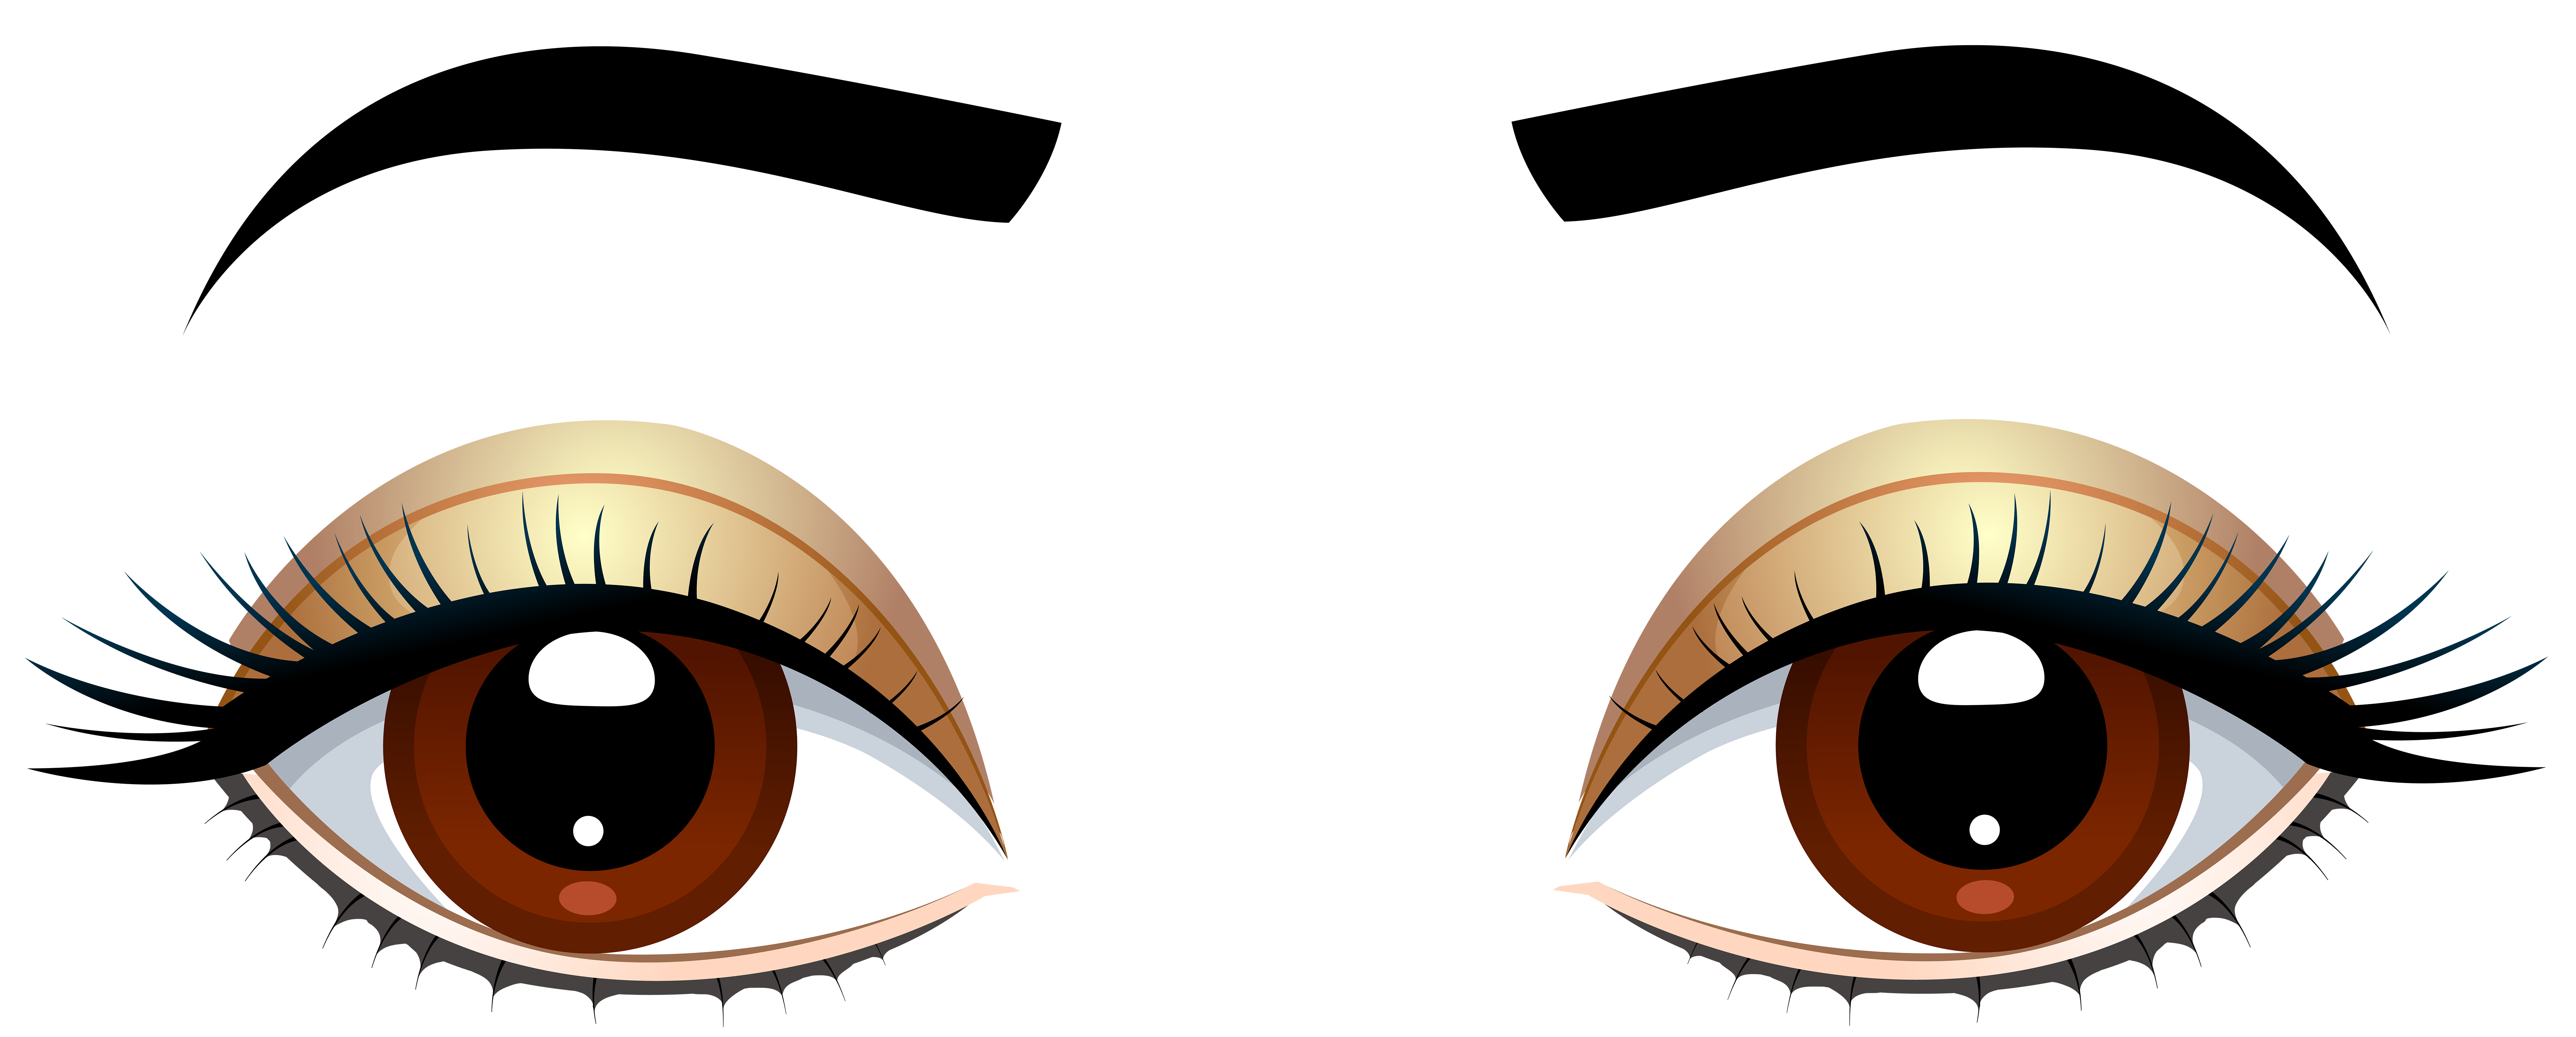 8000x3219 Sweet Design Clipart Eyes Brown With Eyebrows Png Clip Art Best